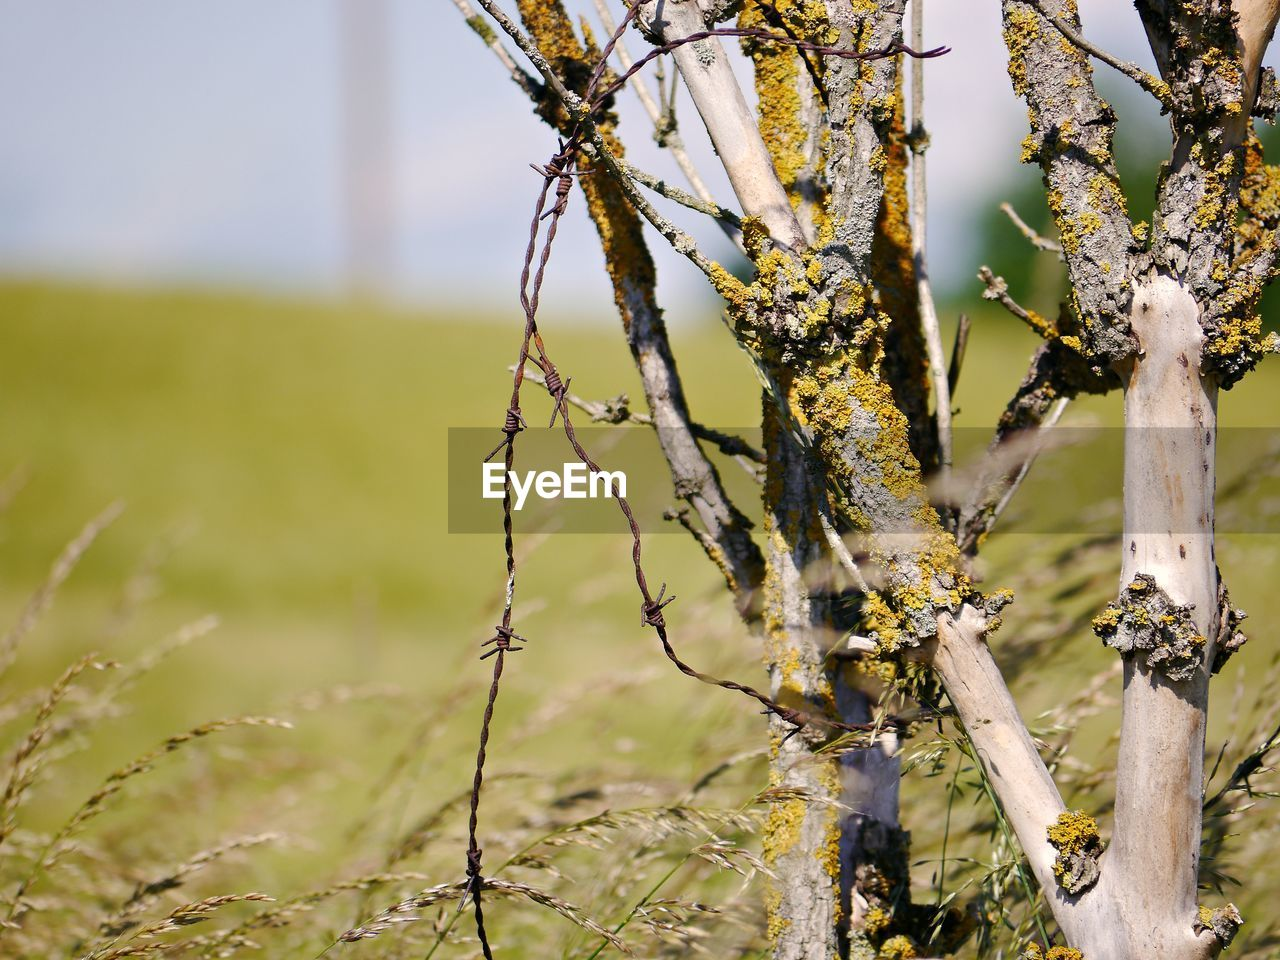 plant, growth, focus on foreground, day, close-up, no people, nature, tree, outdoors, beauty in nature, field, flowering plant, flower, sunlight, fragility, tranquility, green color, branch, vulnerability, land, lichen